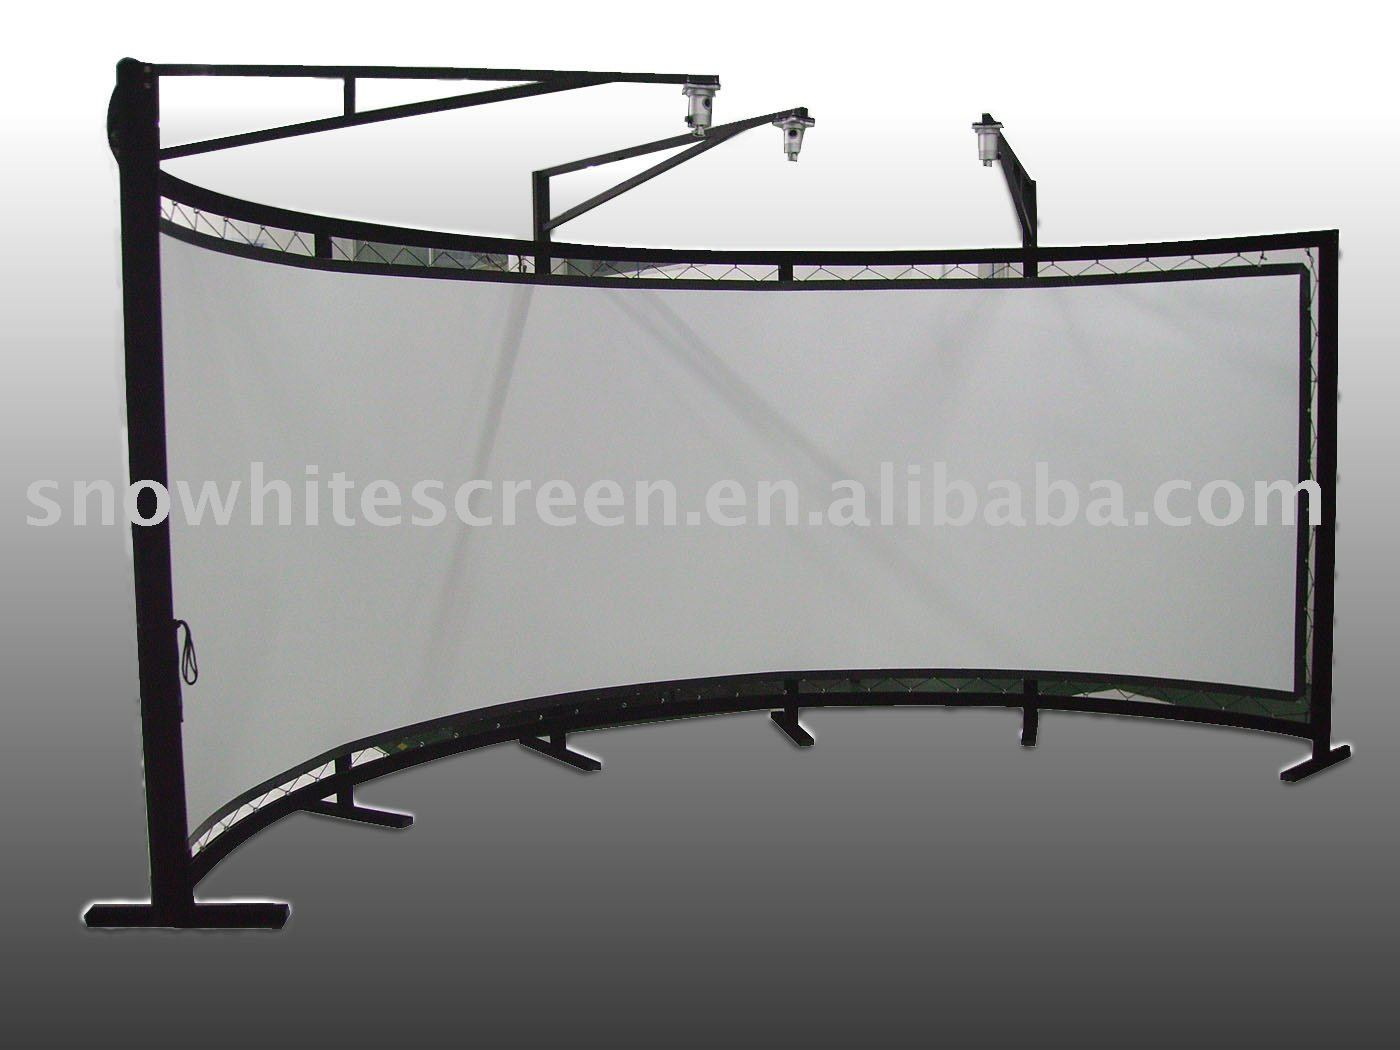 180 degree, 2.35:1 curved Fixed Frame projection screen/ projector screens